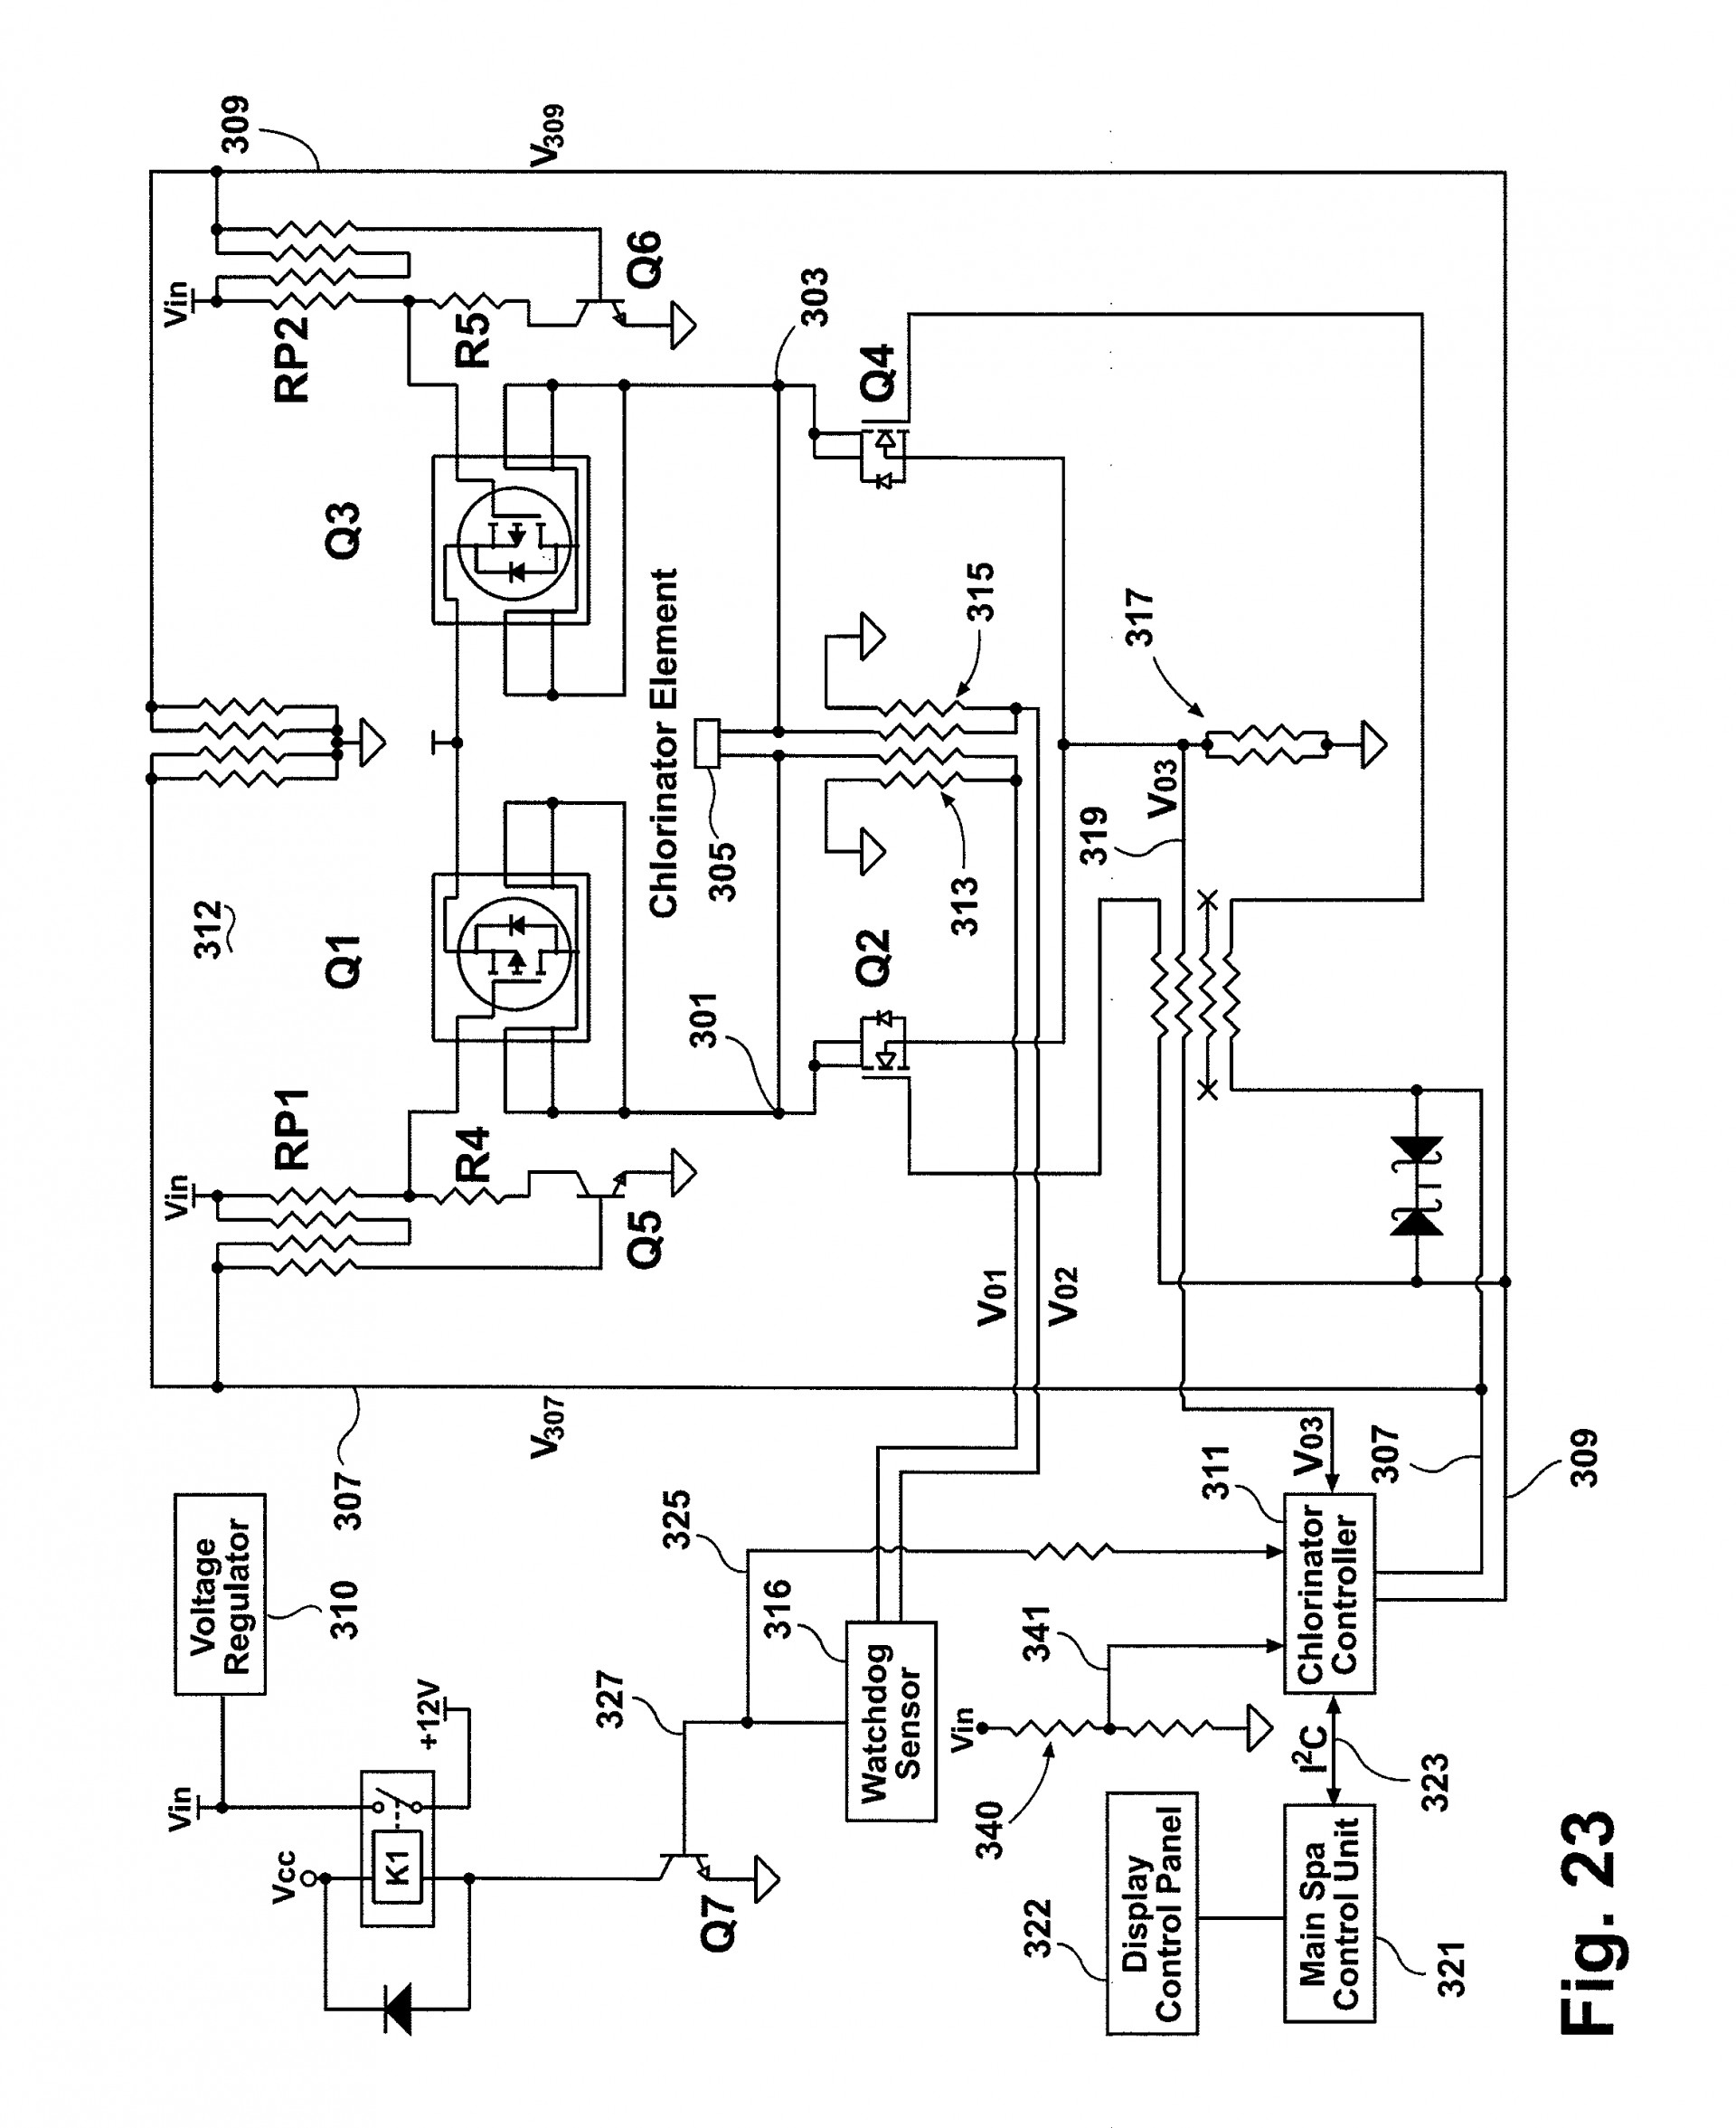 hot tub wiring diagram Download-motor wiring diagrams additionally jacuzzi hot tub plumbing diagram rh 107 191 48 154 18-p